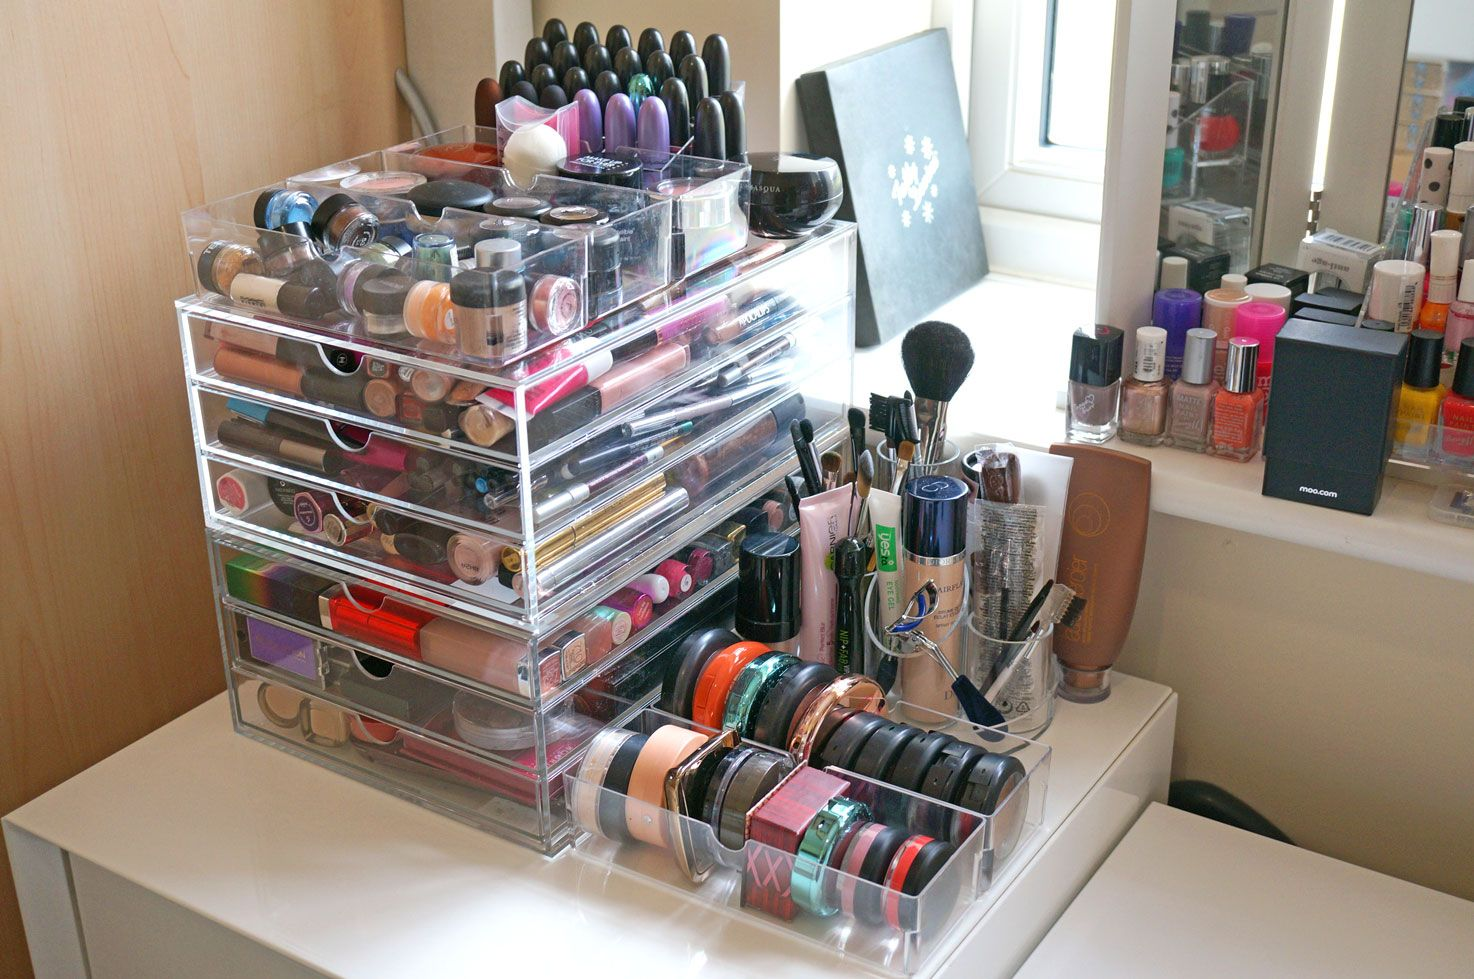 Wonderful Brilliant New Massive Acrylic Makeup Storage Review Thou Shalt Not Covet  With Storage For Make Up